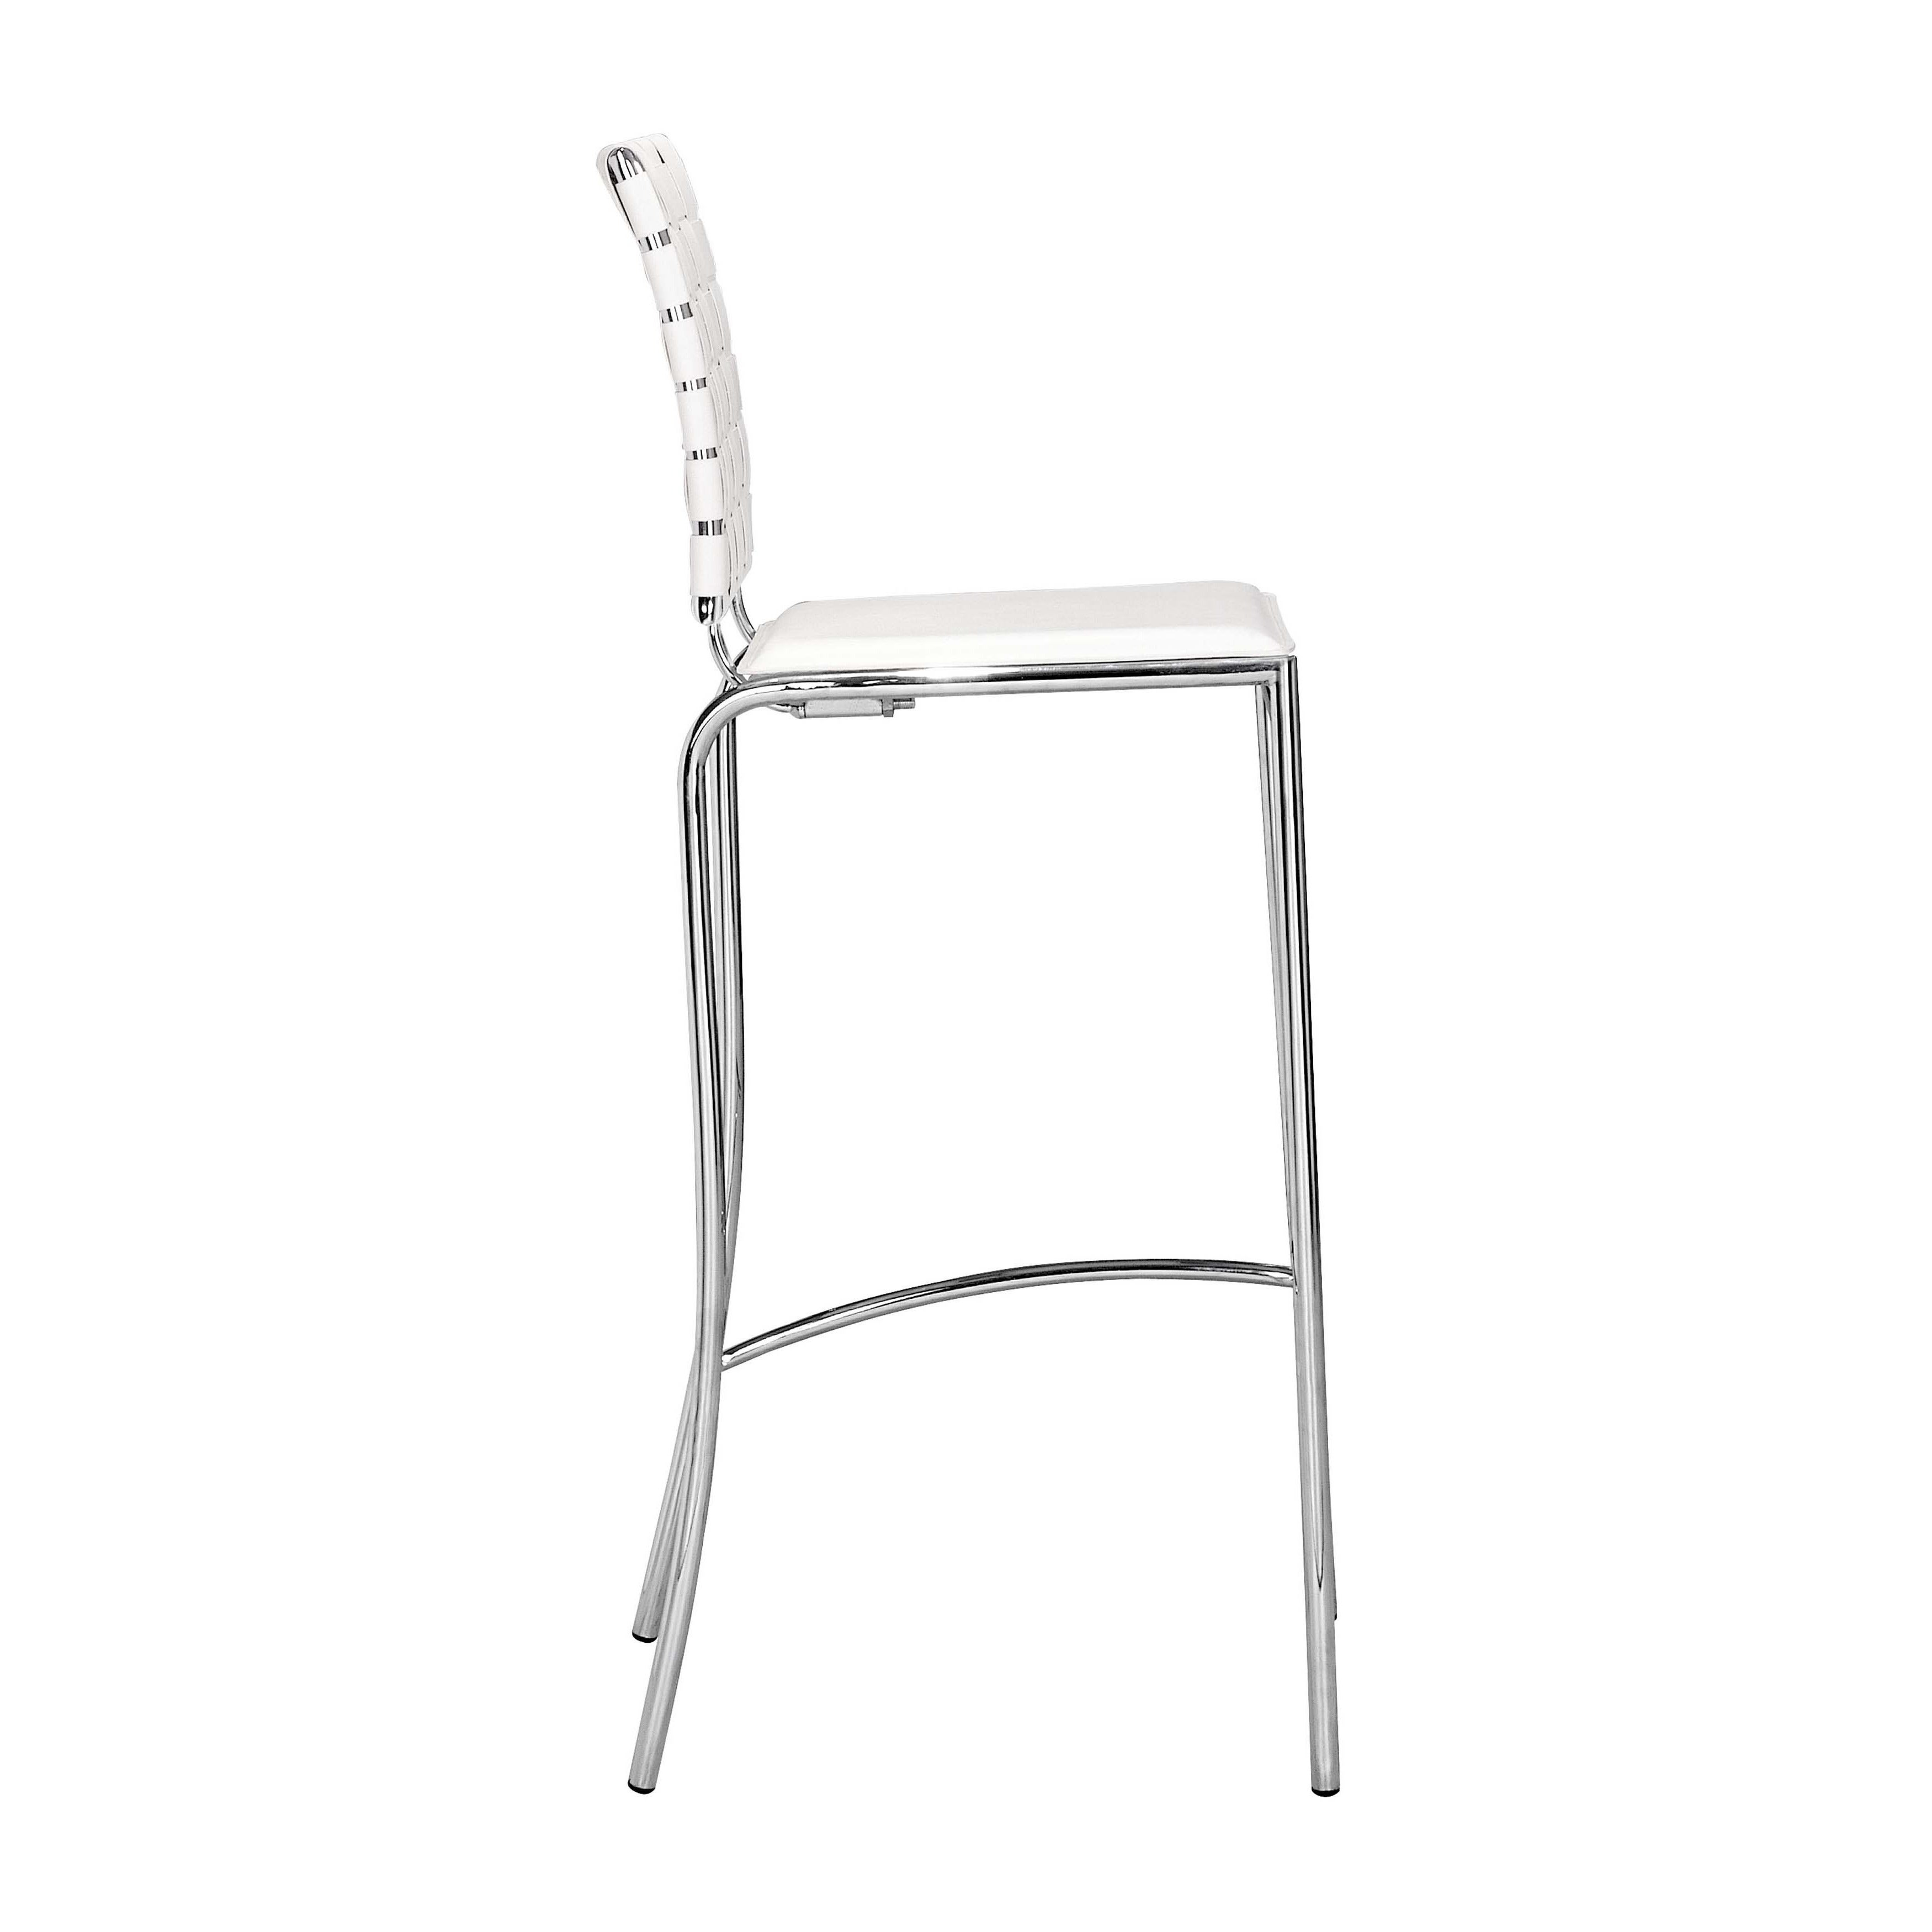 Zuo Criss Cross Modern Leather And Chrome White Bar Chairs Set Of 2 Free Shipping Today 6995887